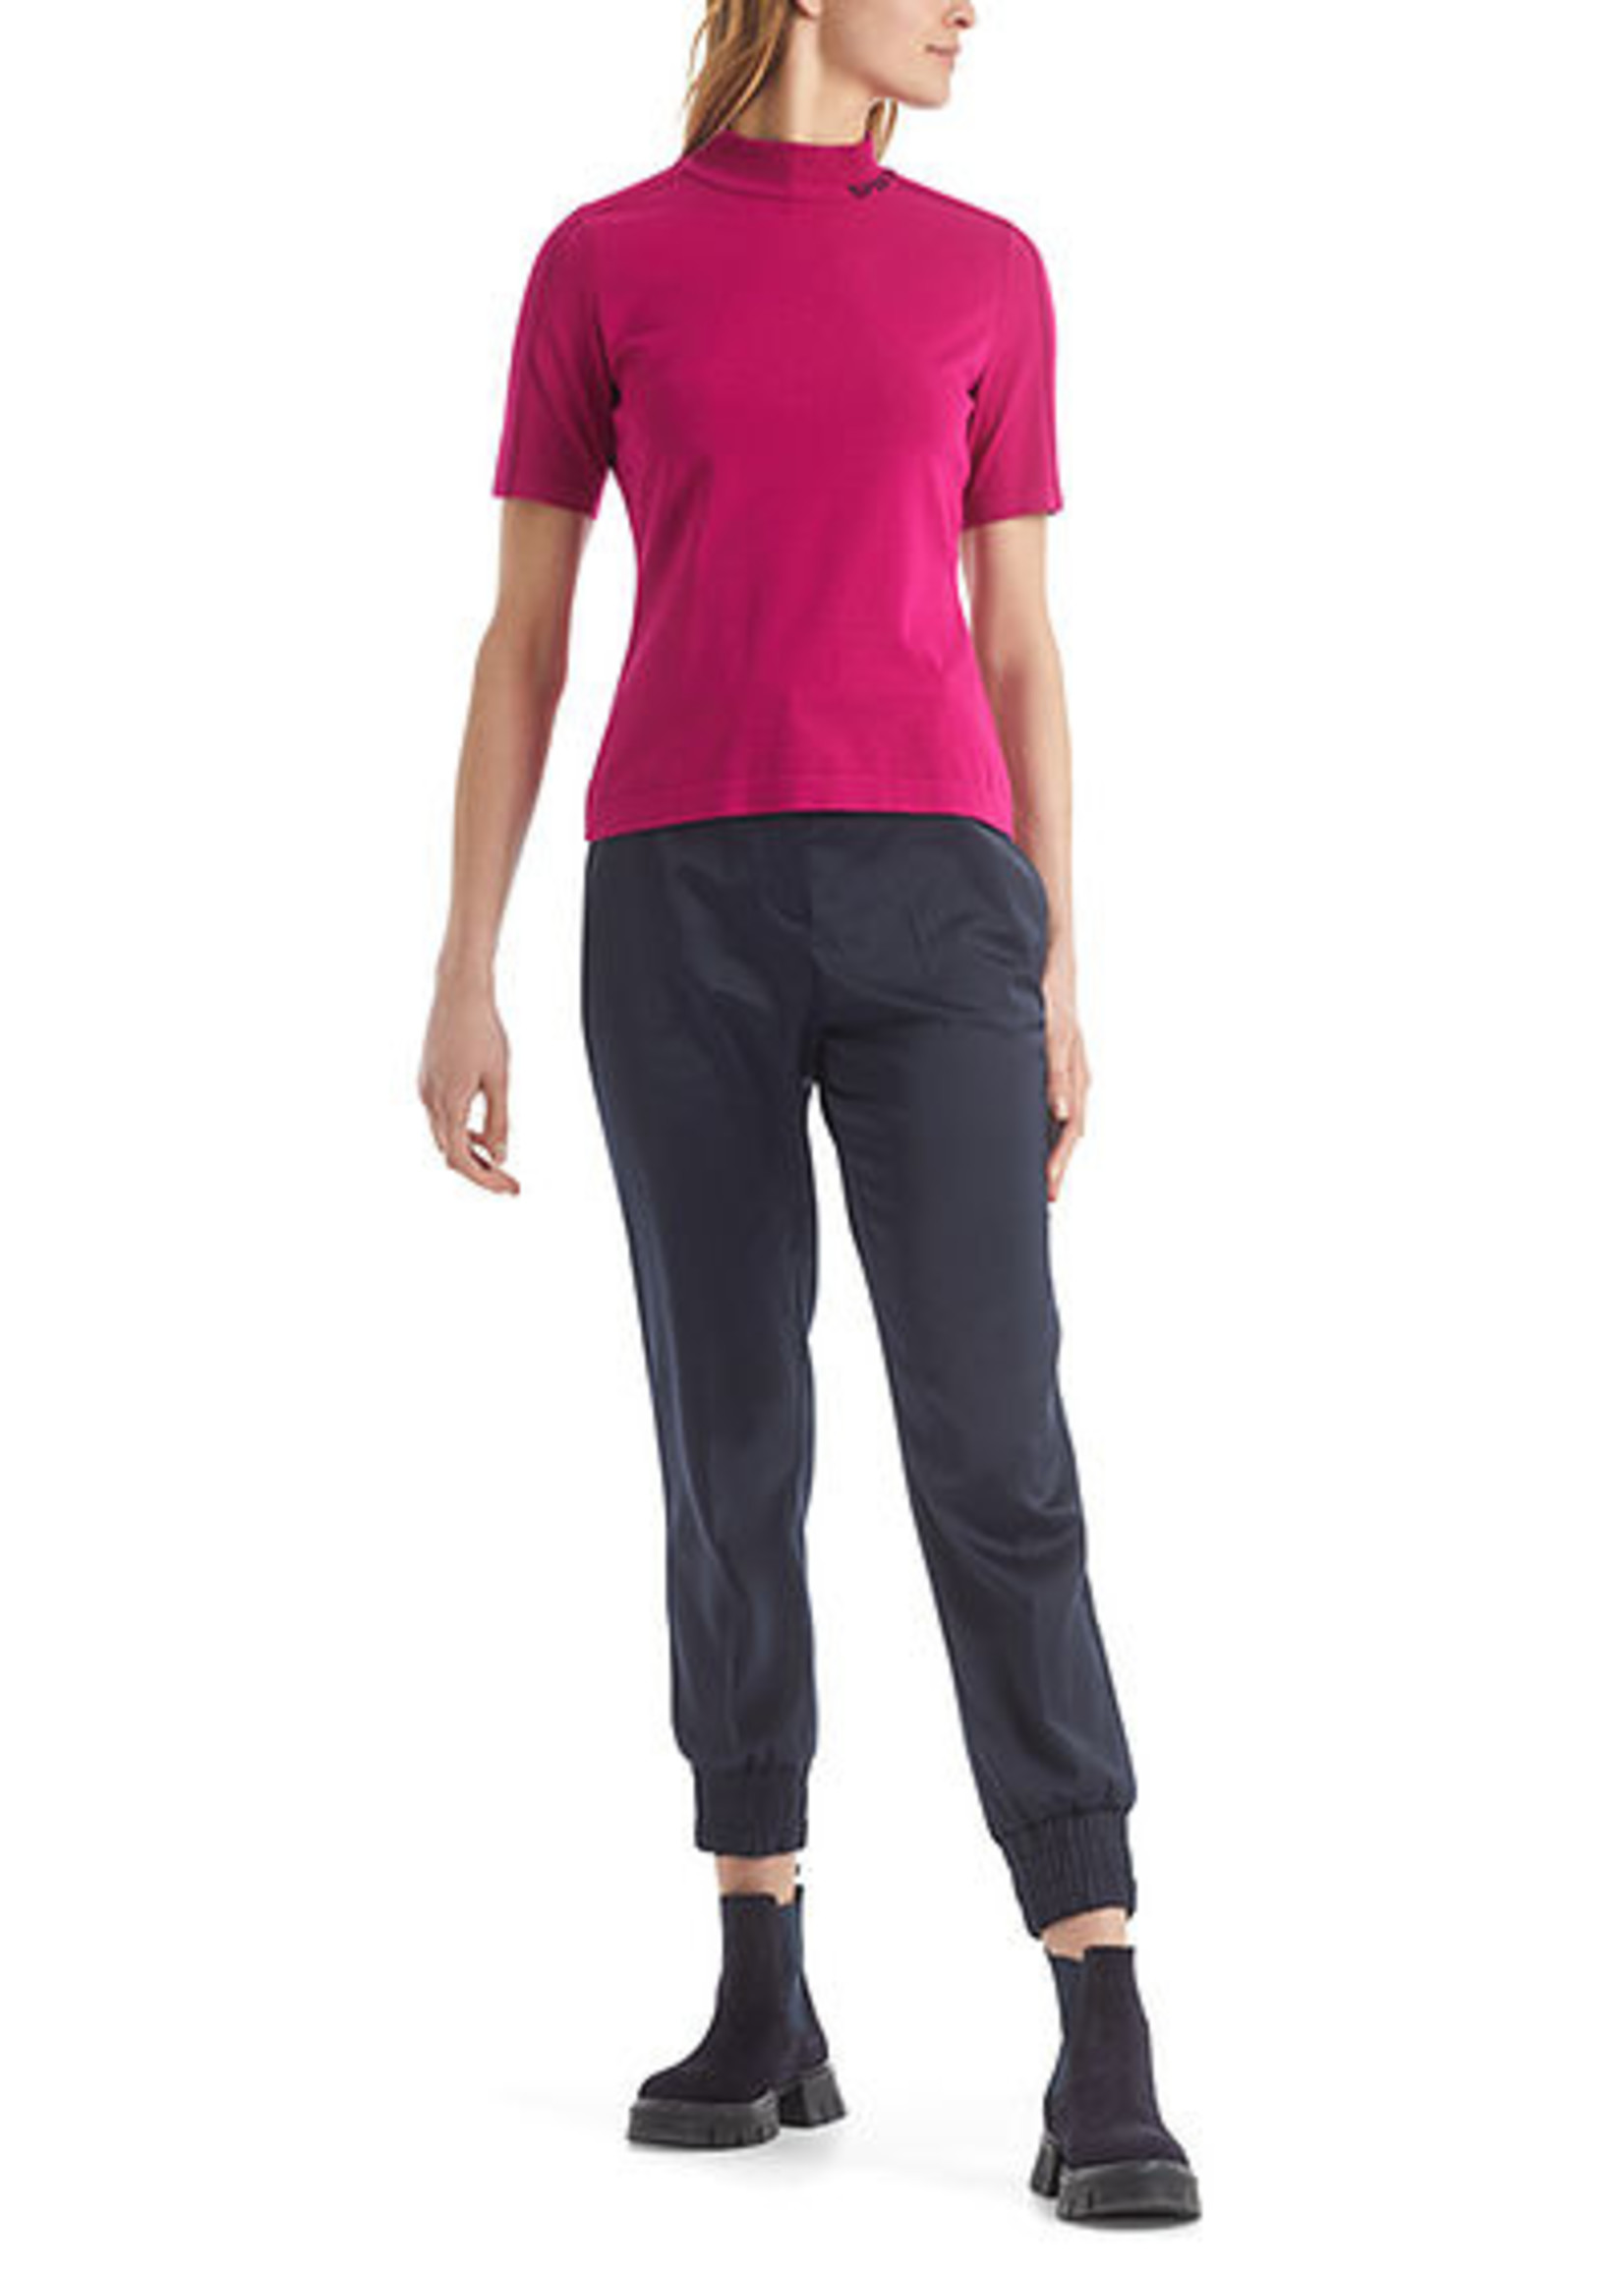 Marccain Sports Sweater RS 41.19 M12 fresh magenta